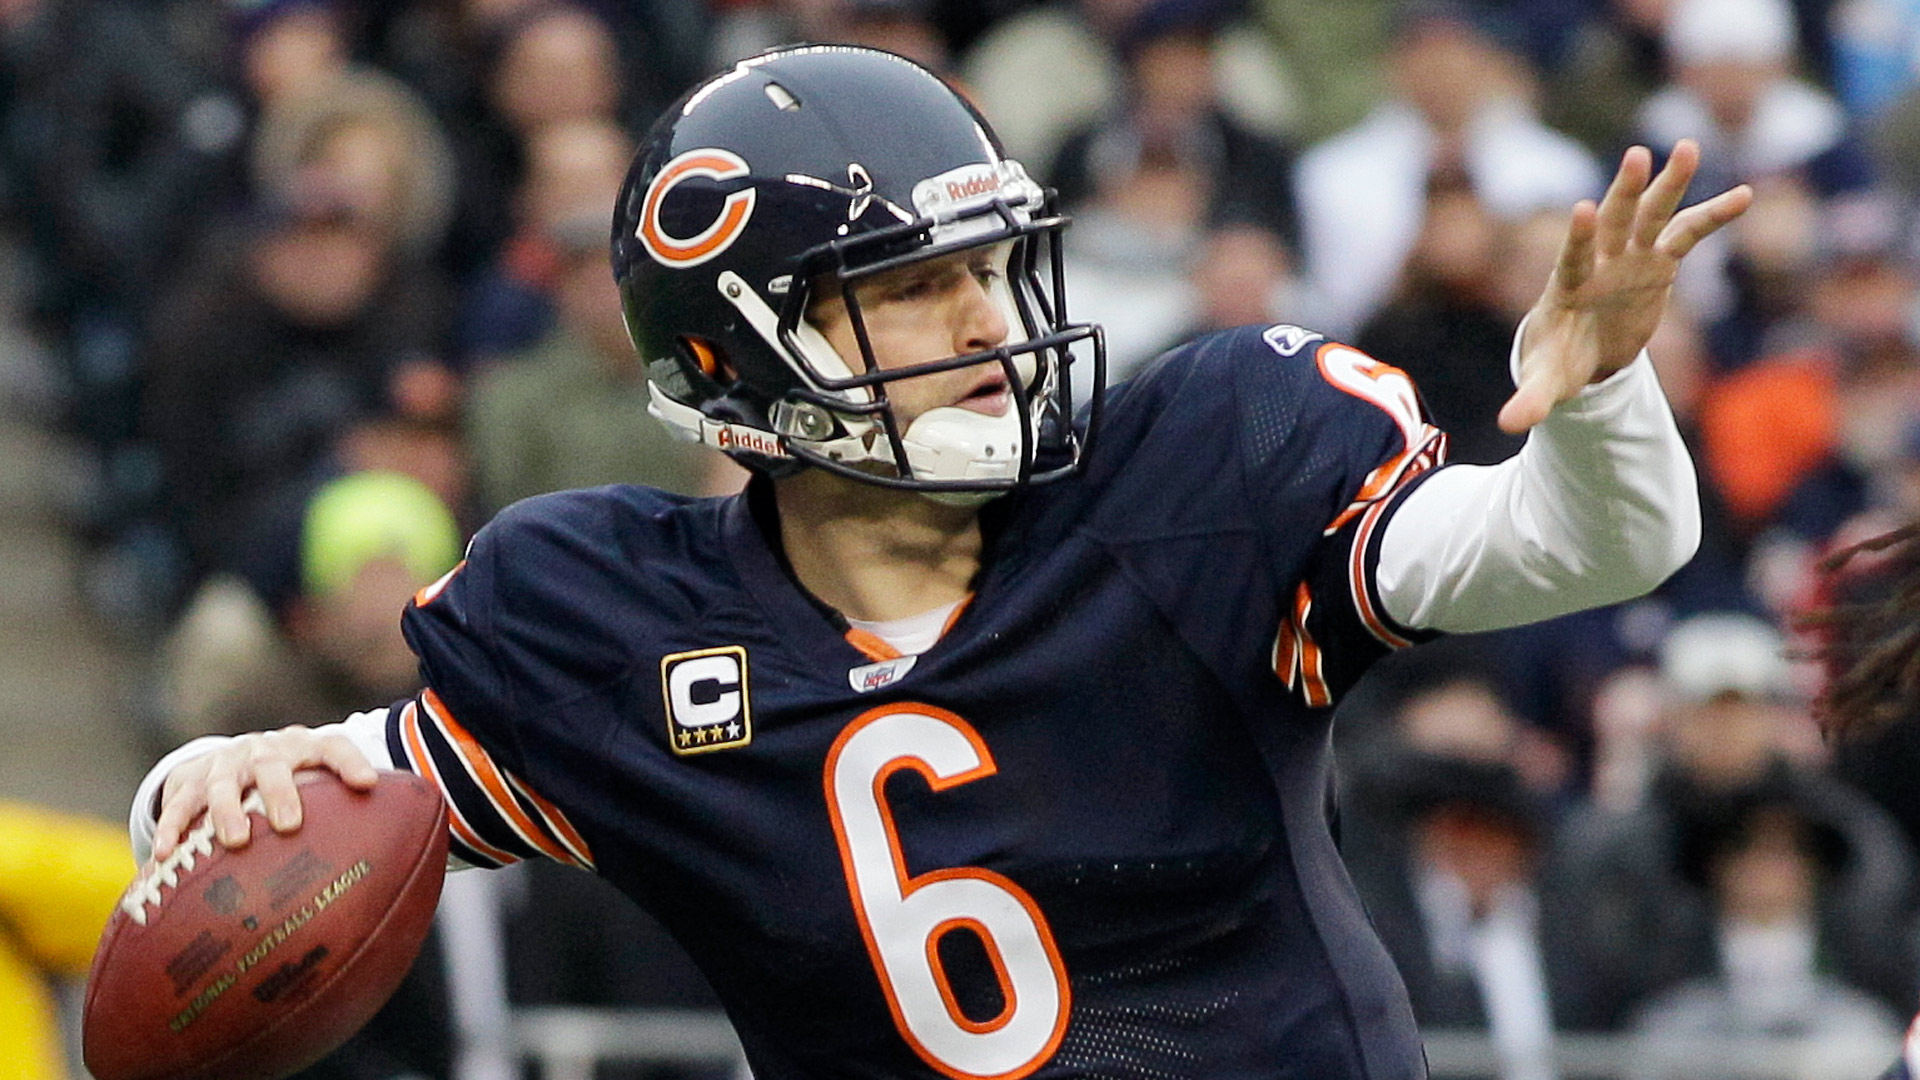 Top fantasy football pickups for Week 16: Cutler to the rescue?